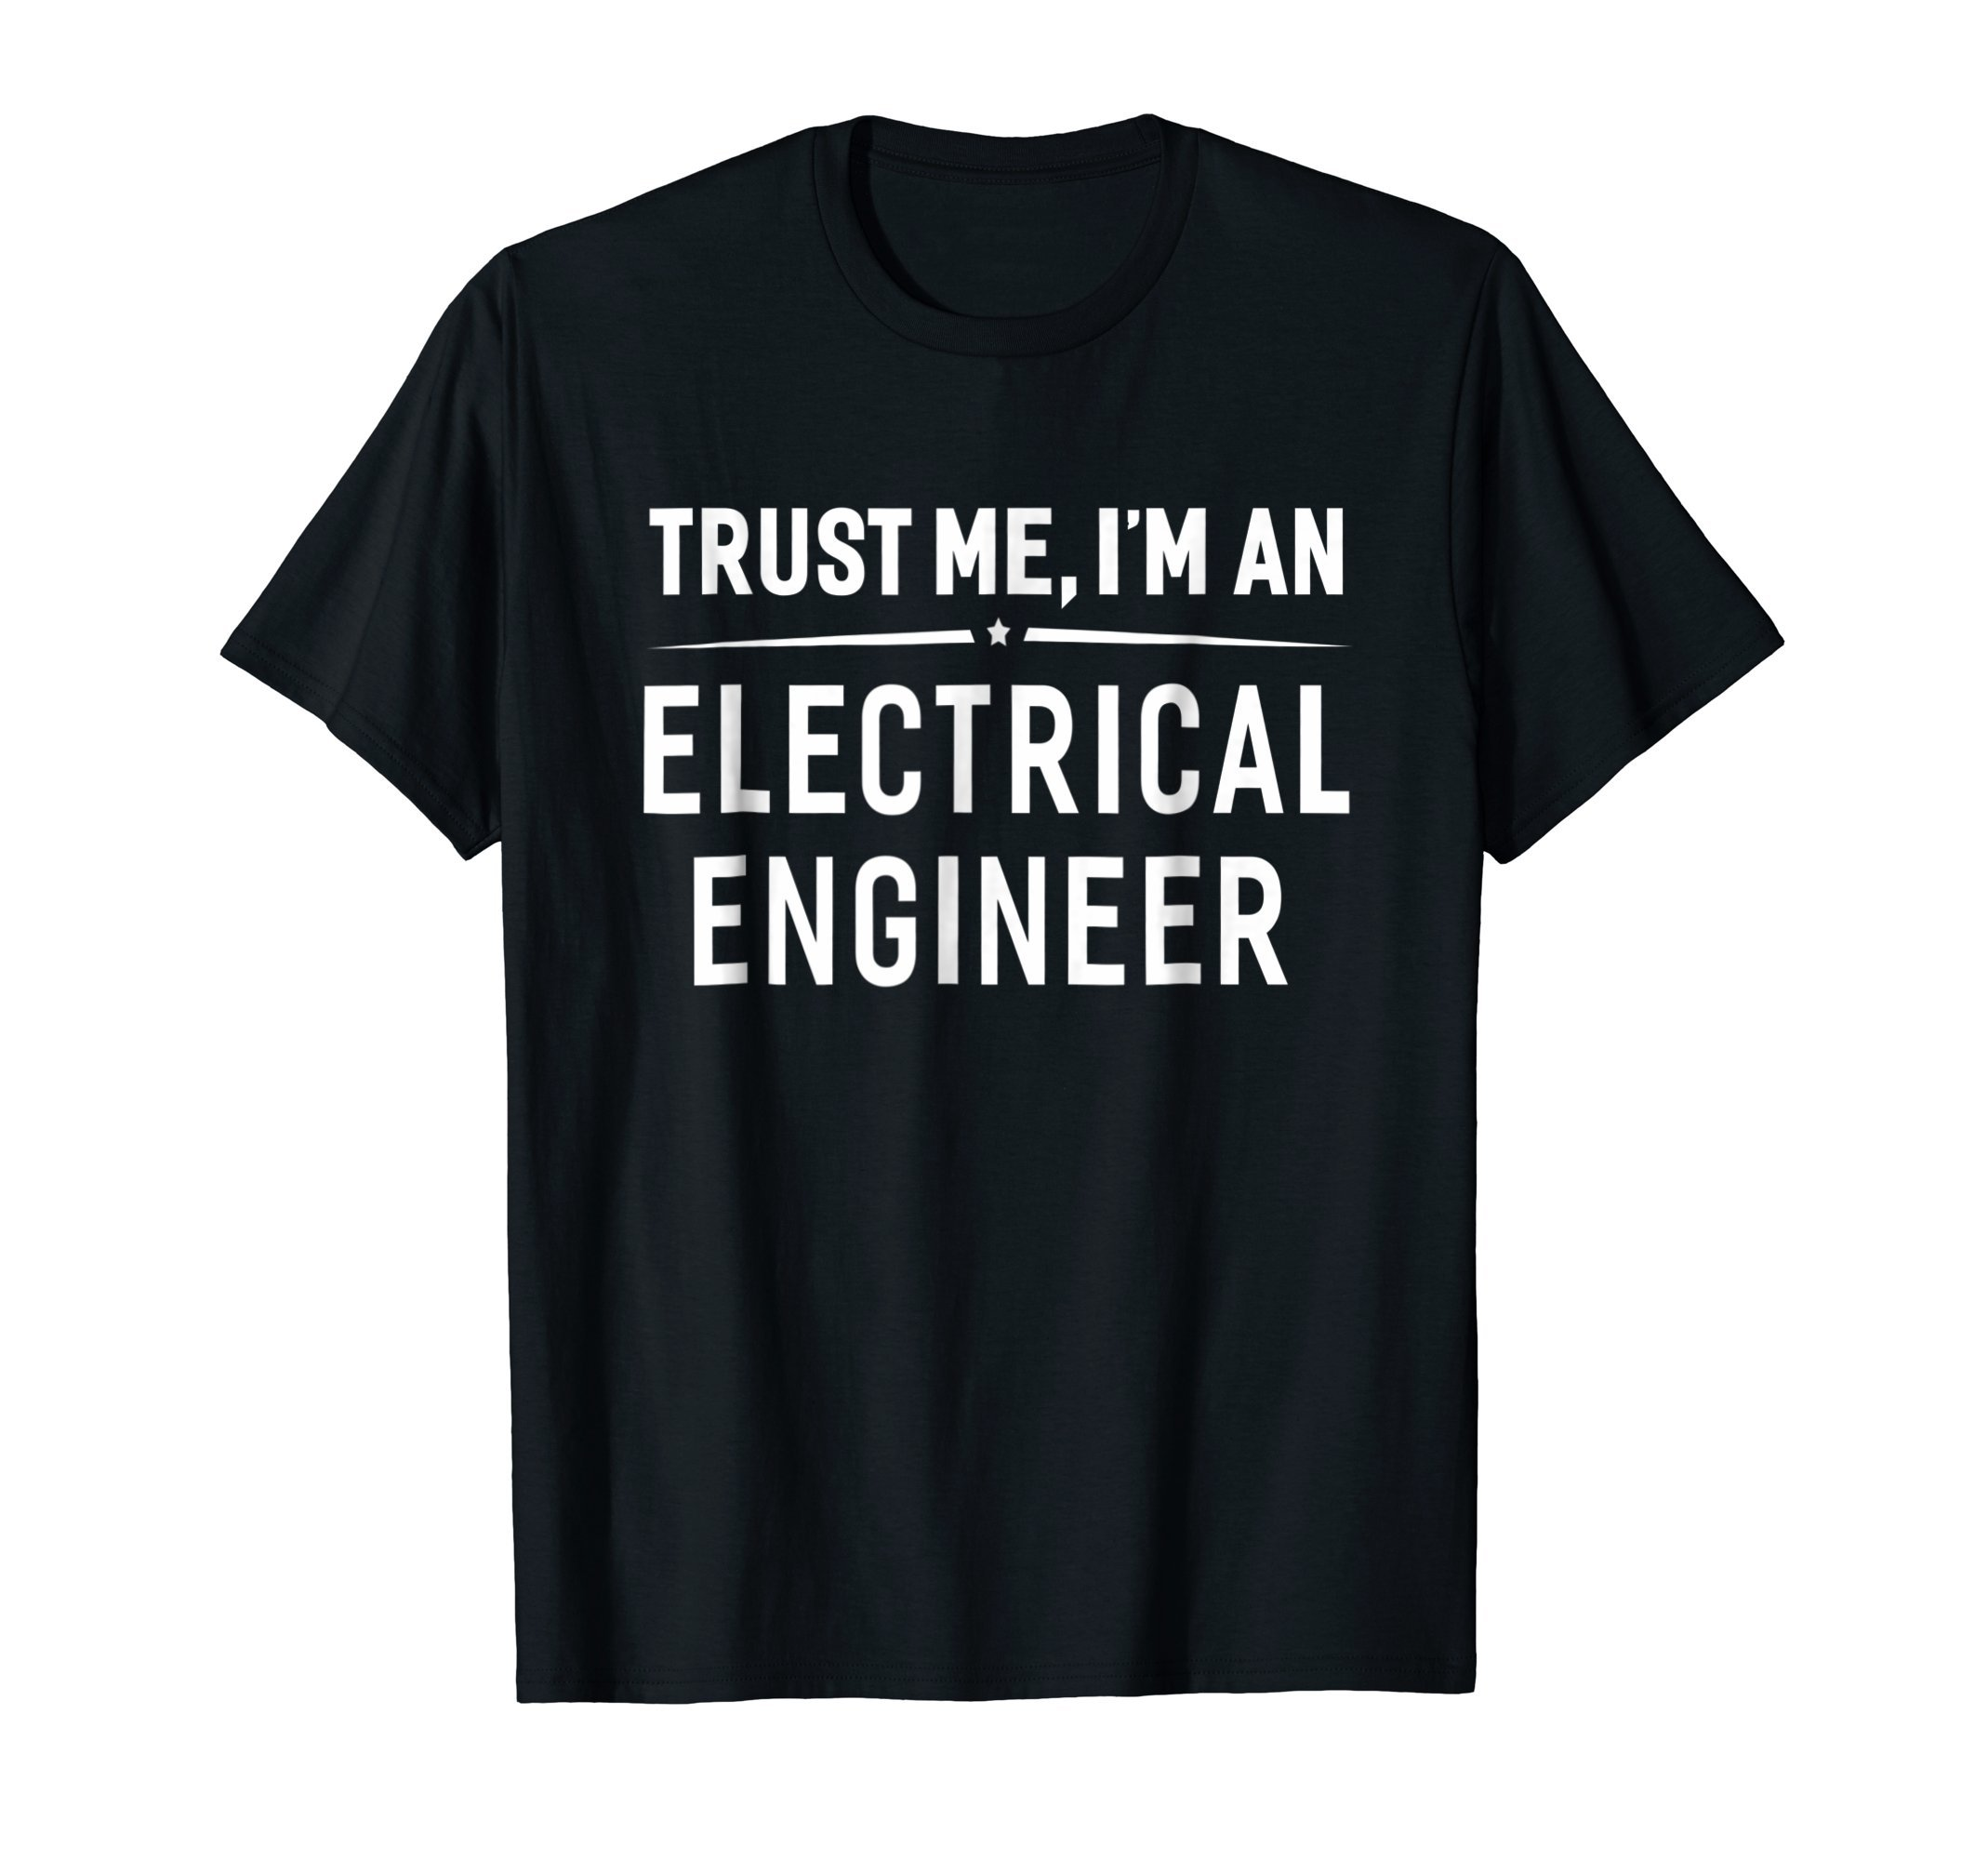 Trust Me I'm An Electrical Engineer T-Shirt Women Men Funny